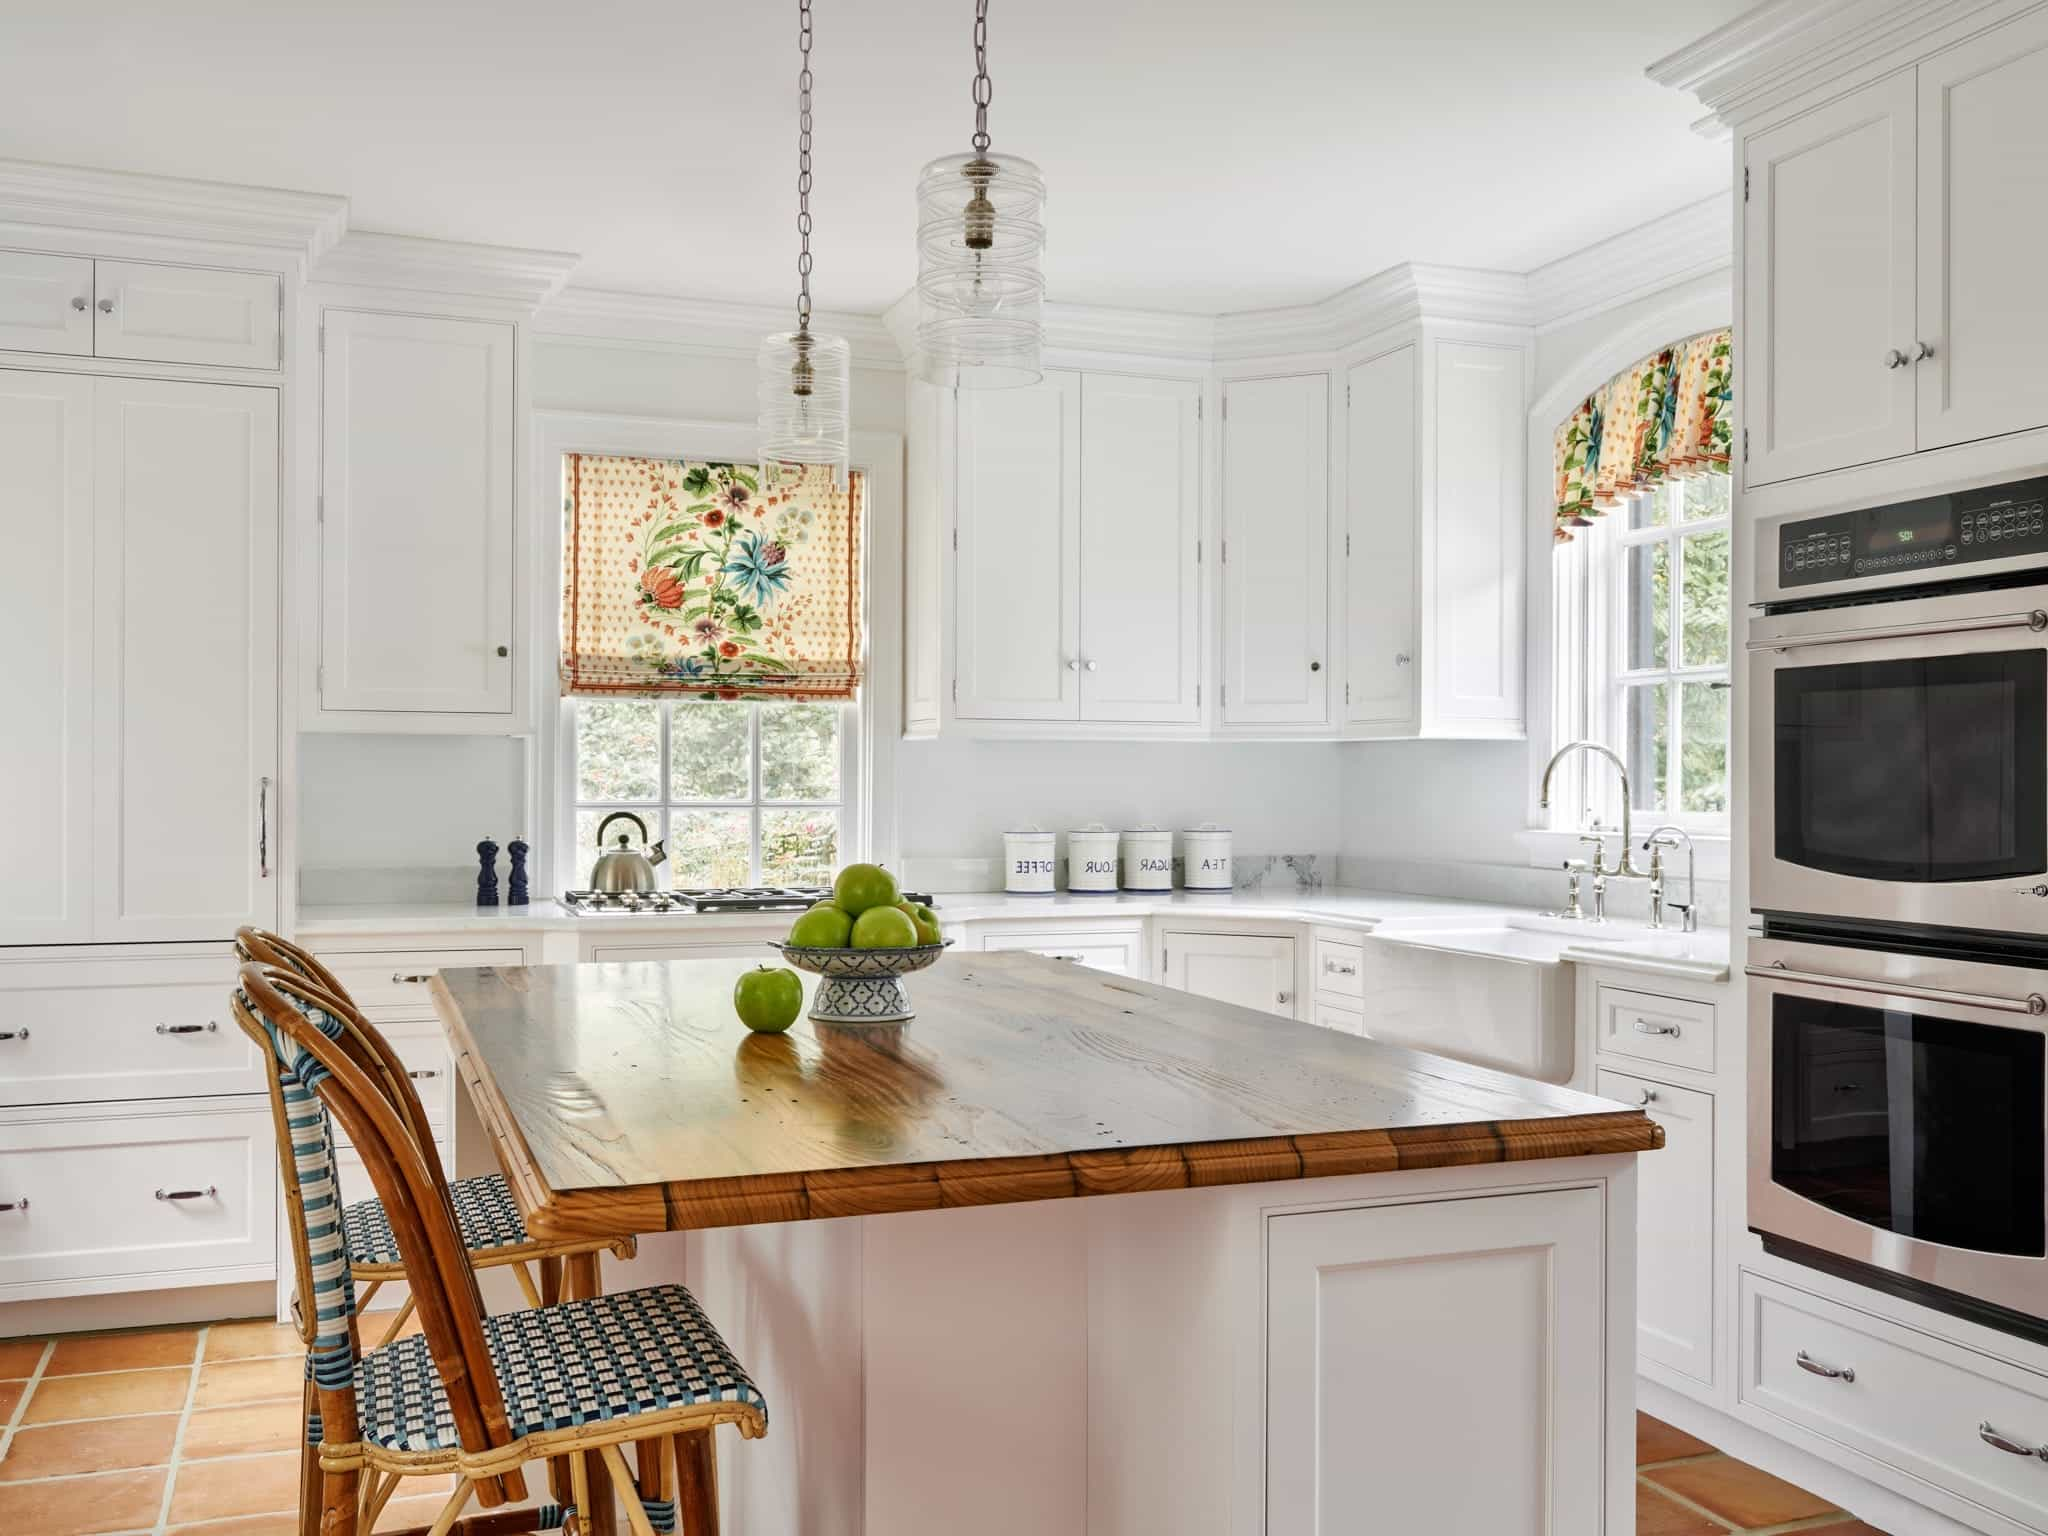 White French Country Kitchen With Yellow Window Curtain Treatments (Image 10 of 11)